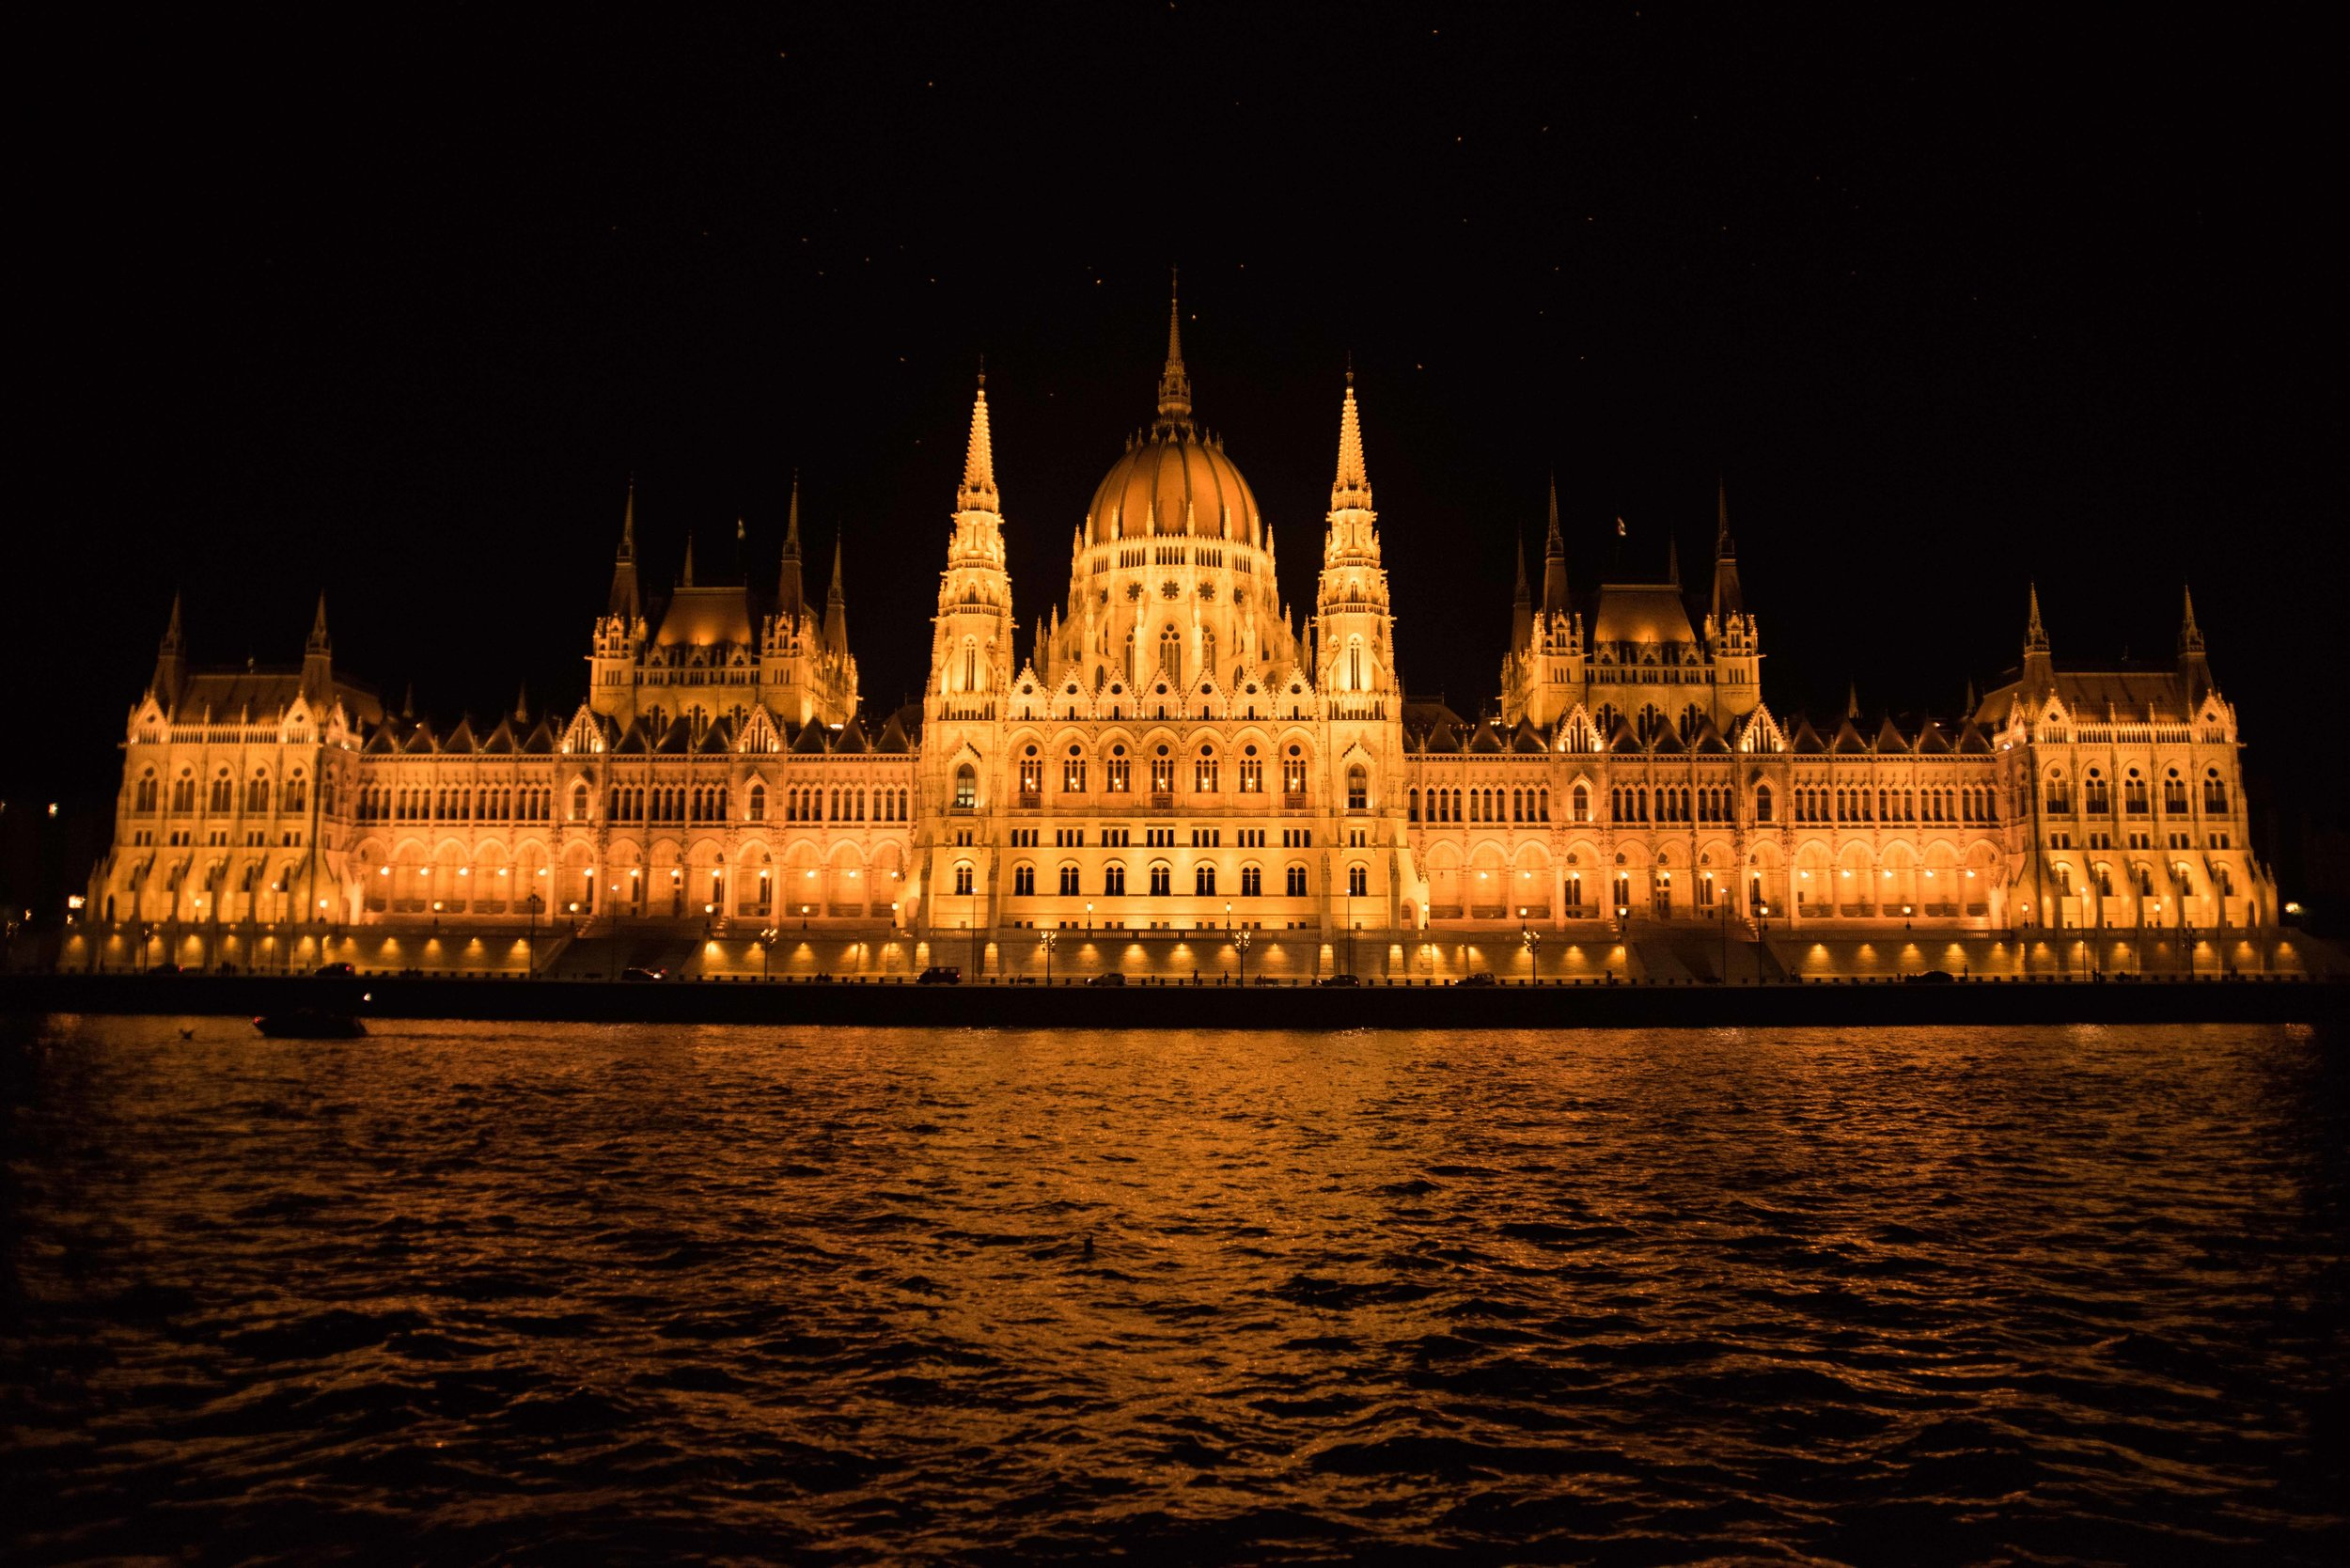 Parliament at night, Budapest